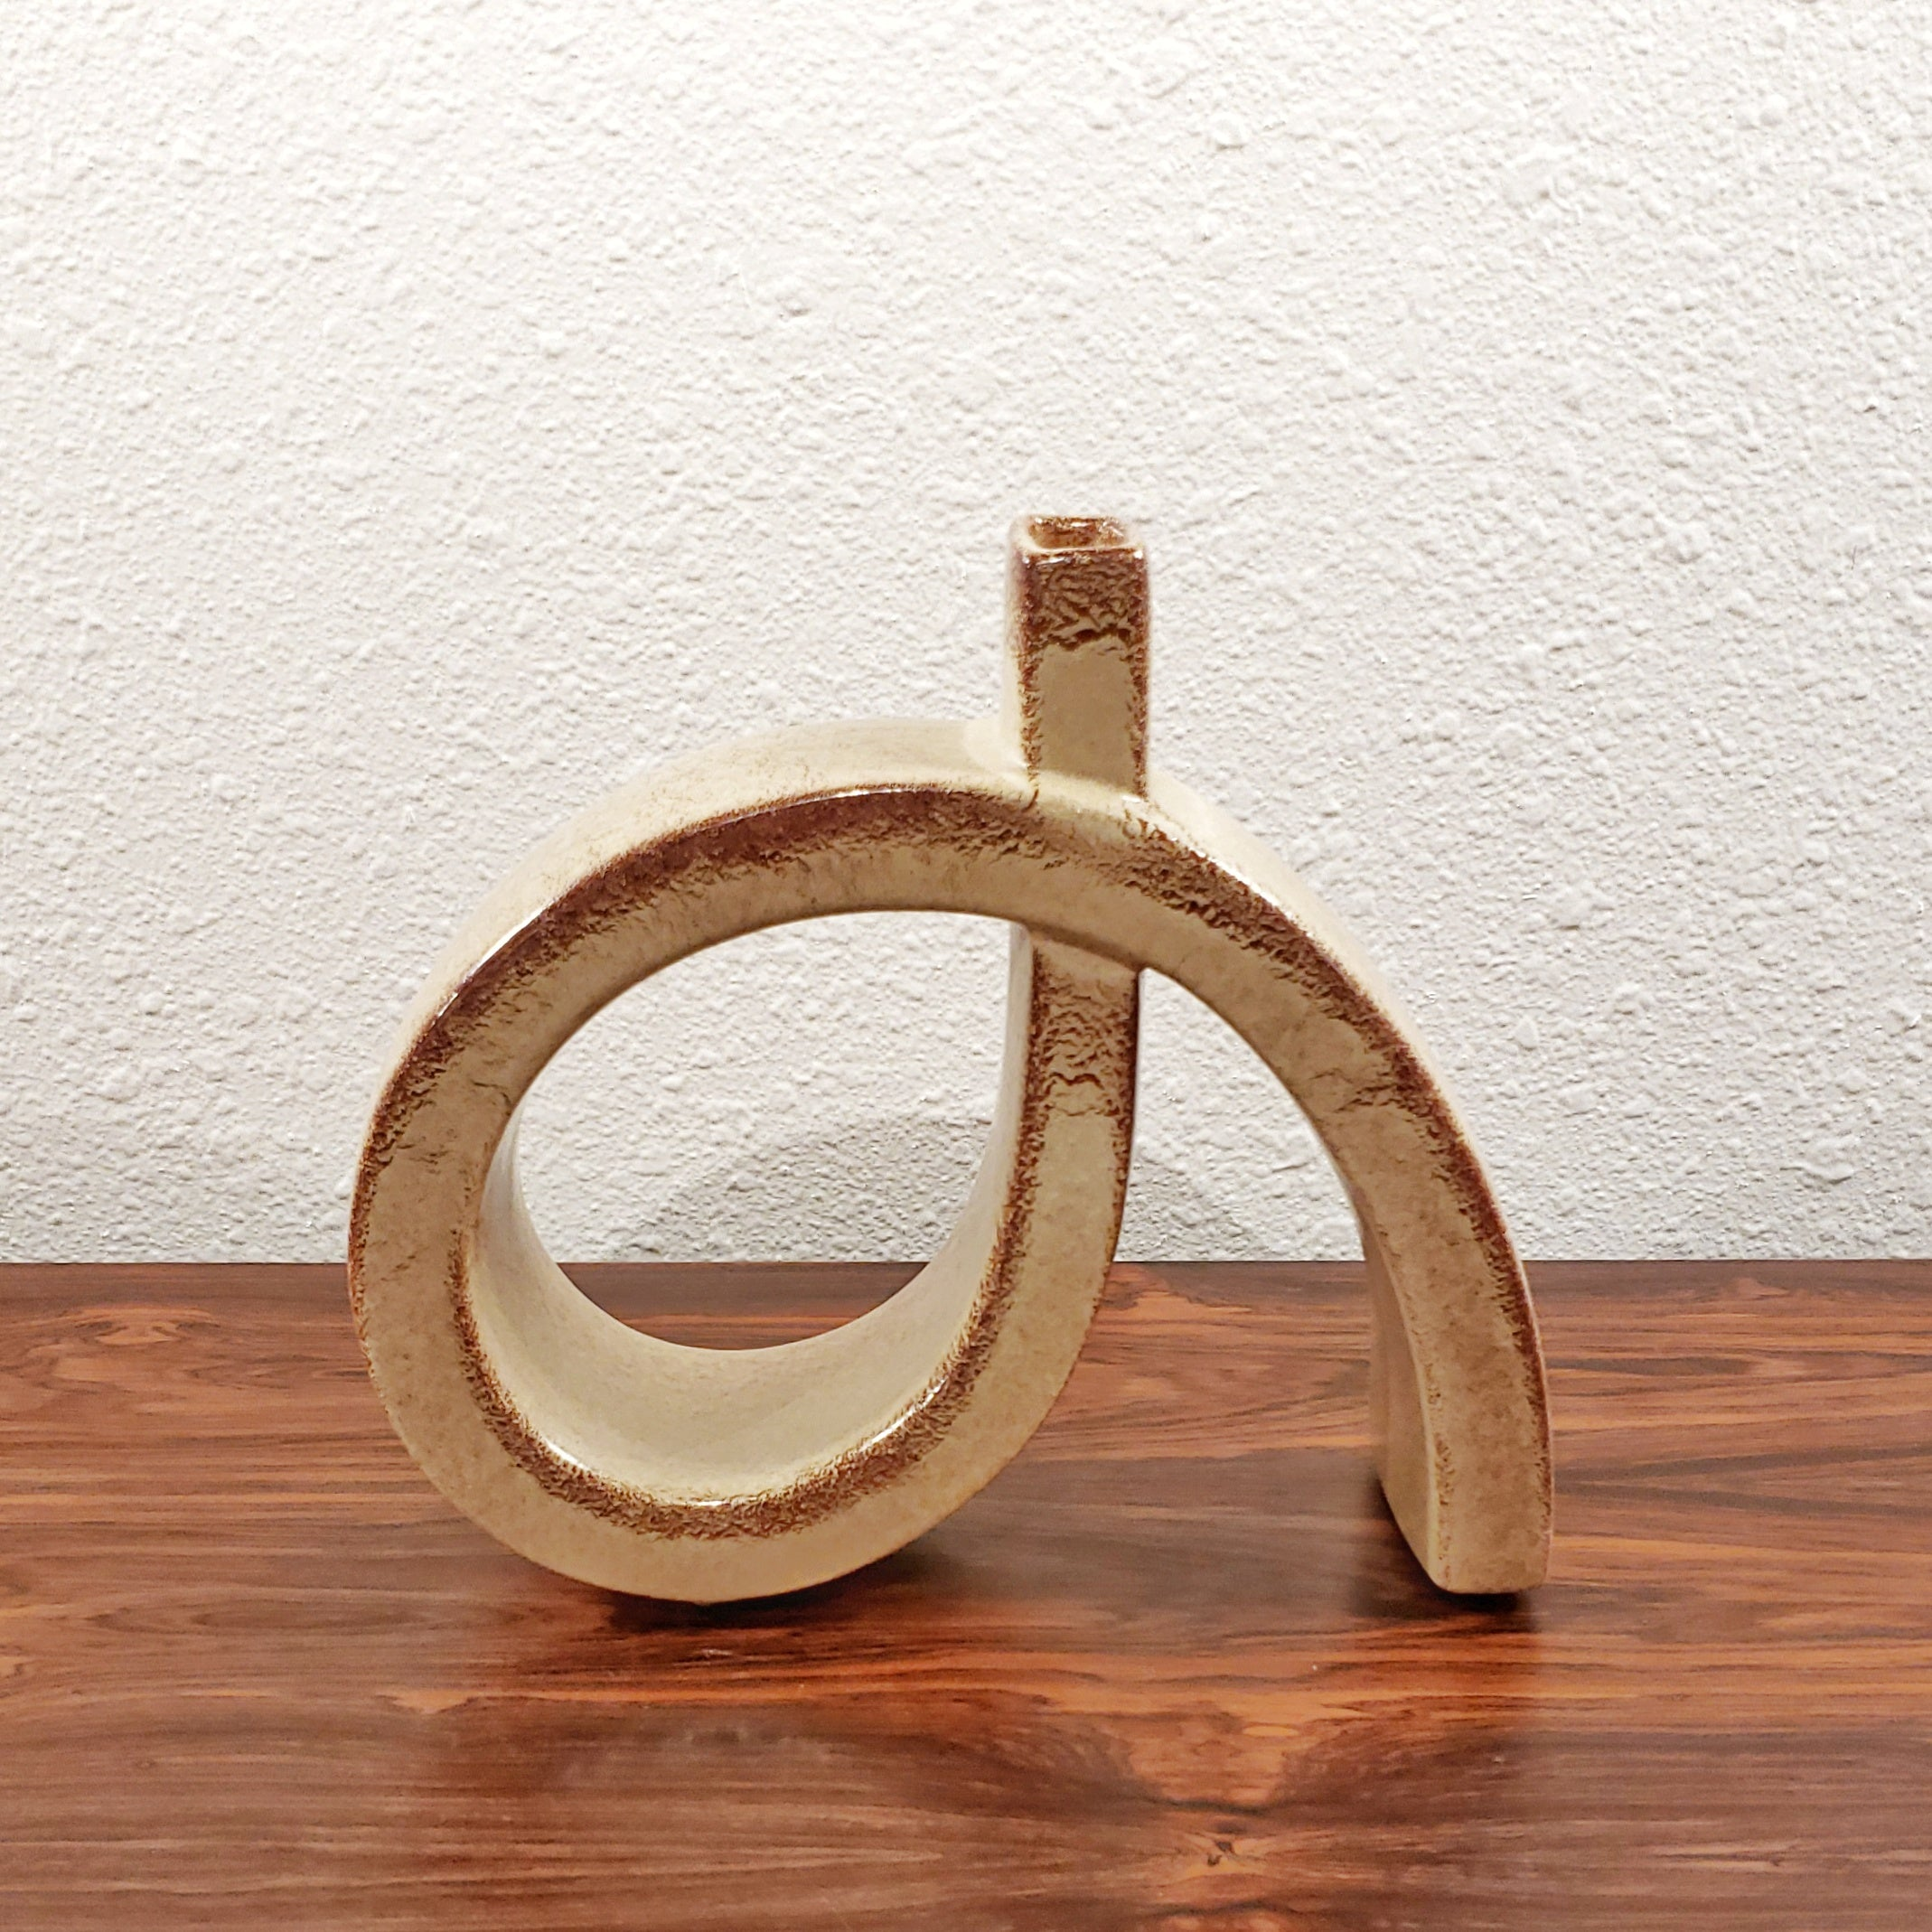 BERTONCELLO 'SCREZIATO HAVANA' LOOP VASE